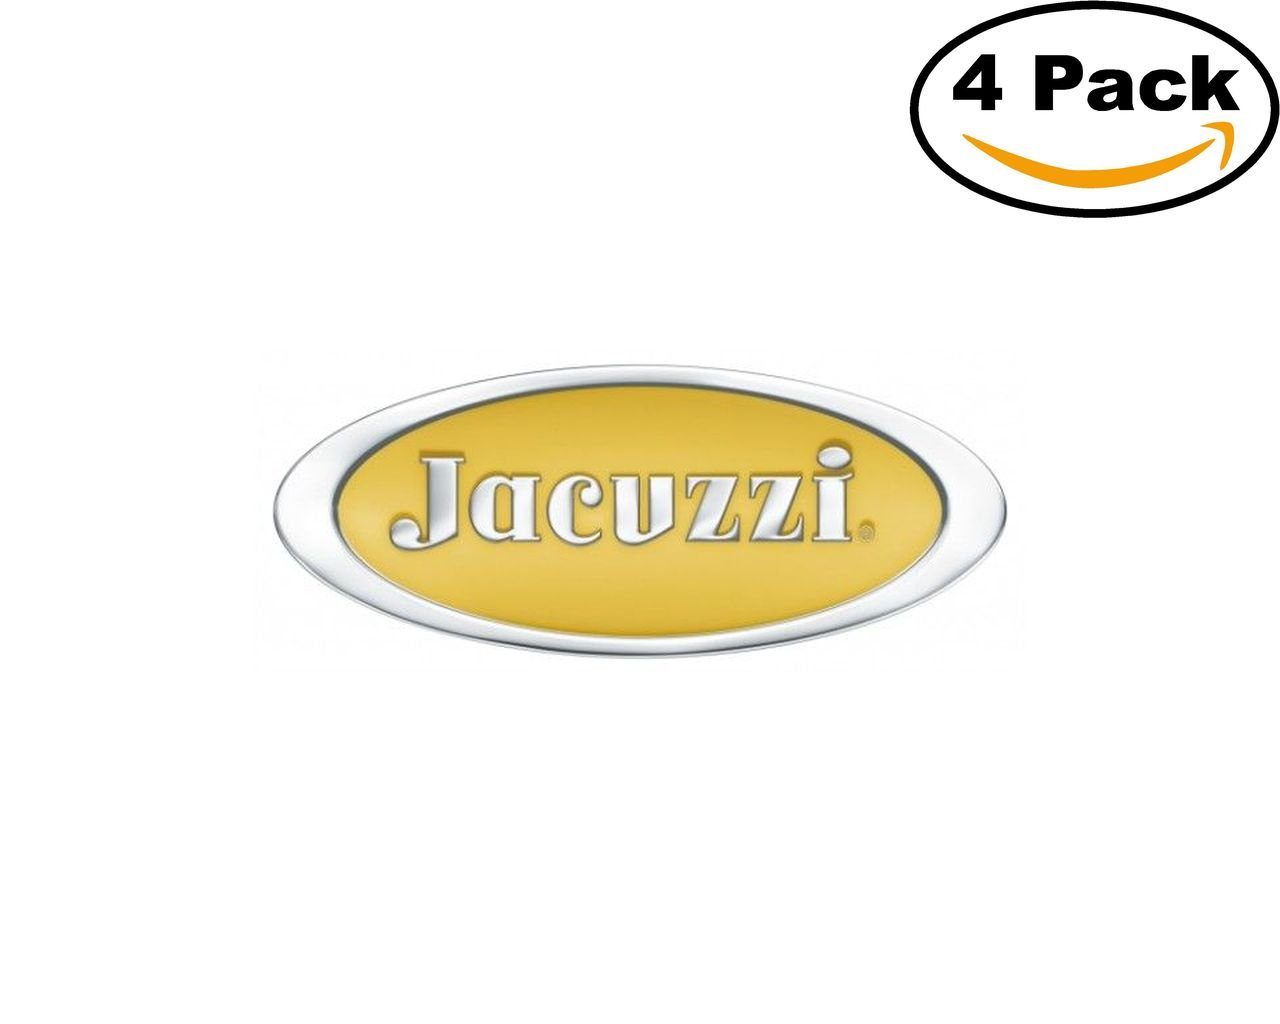 Amazon.com: Construction Jacuzzi Logo 4 Stickers 4X4 Inches Car ...